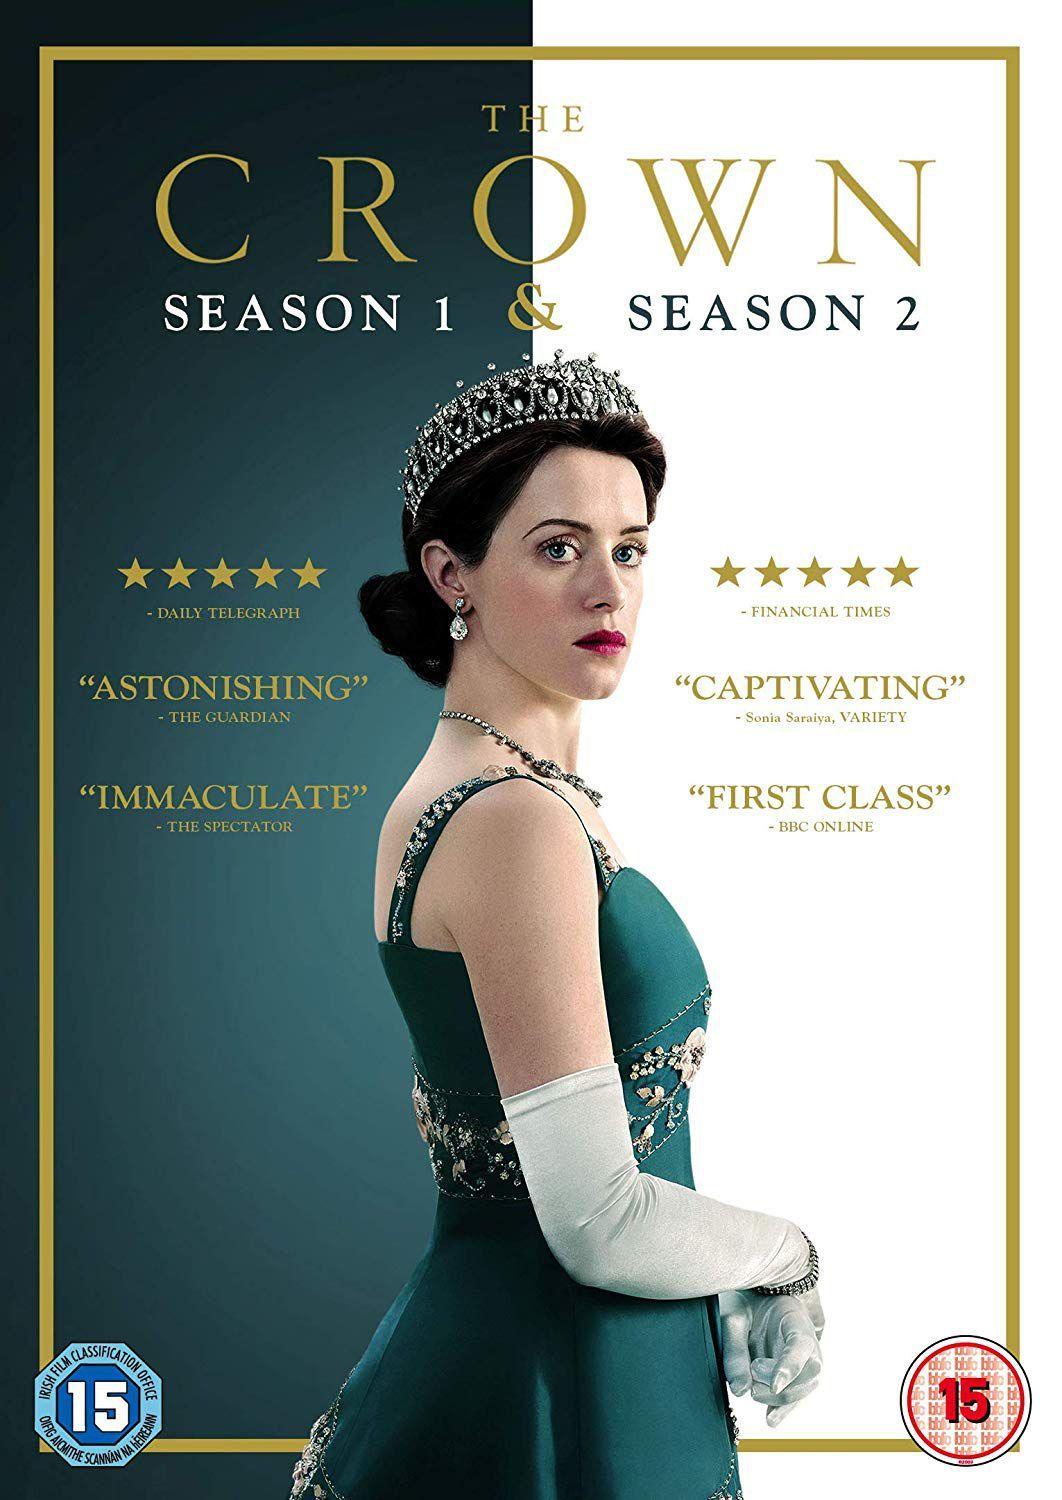 The Crown Season 3 Everything You Need To Know Shows